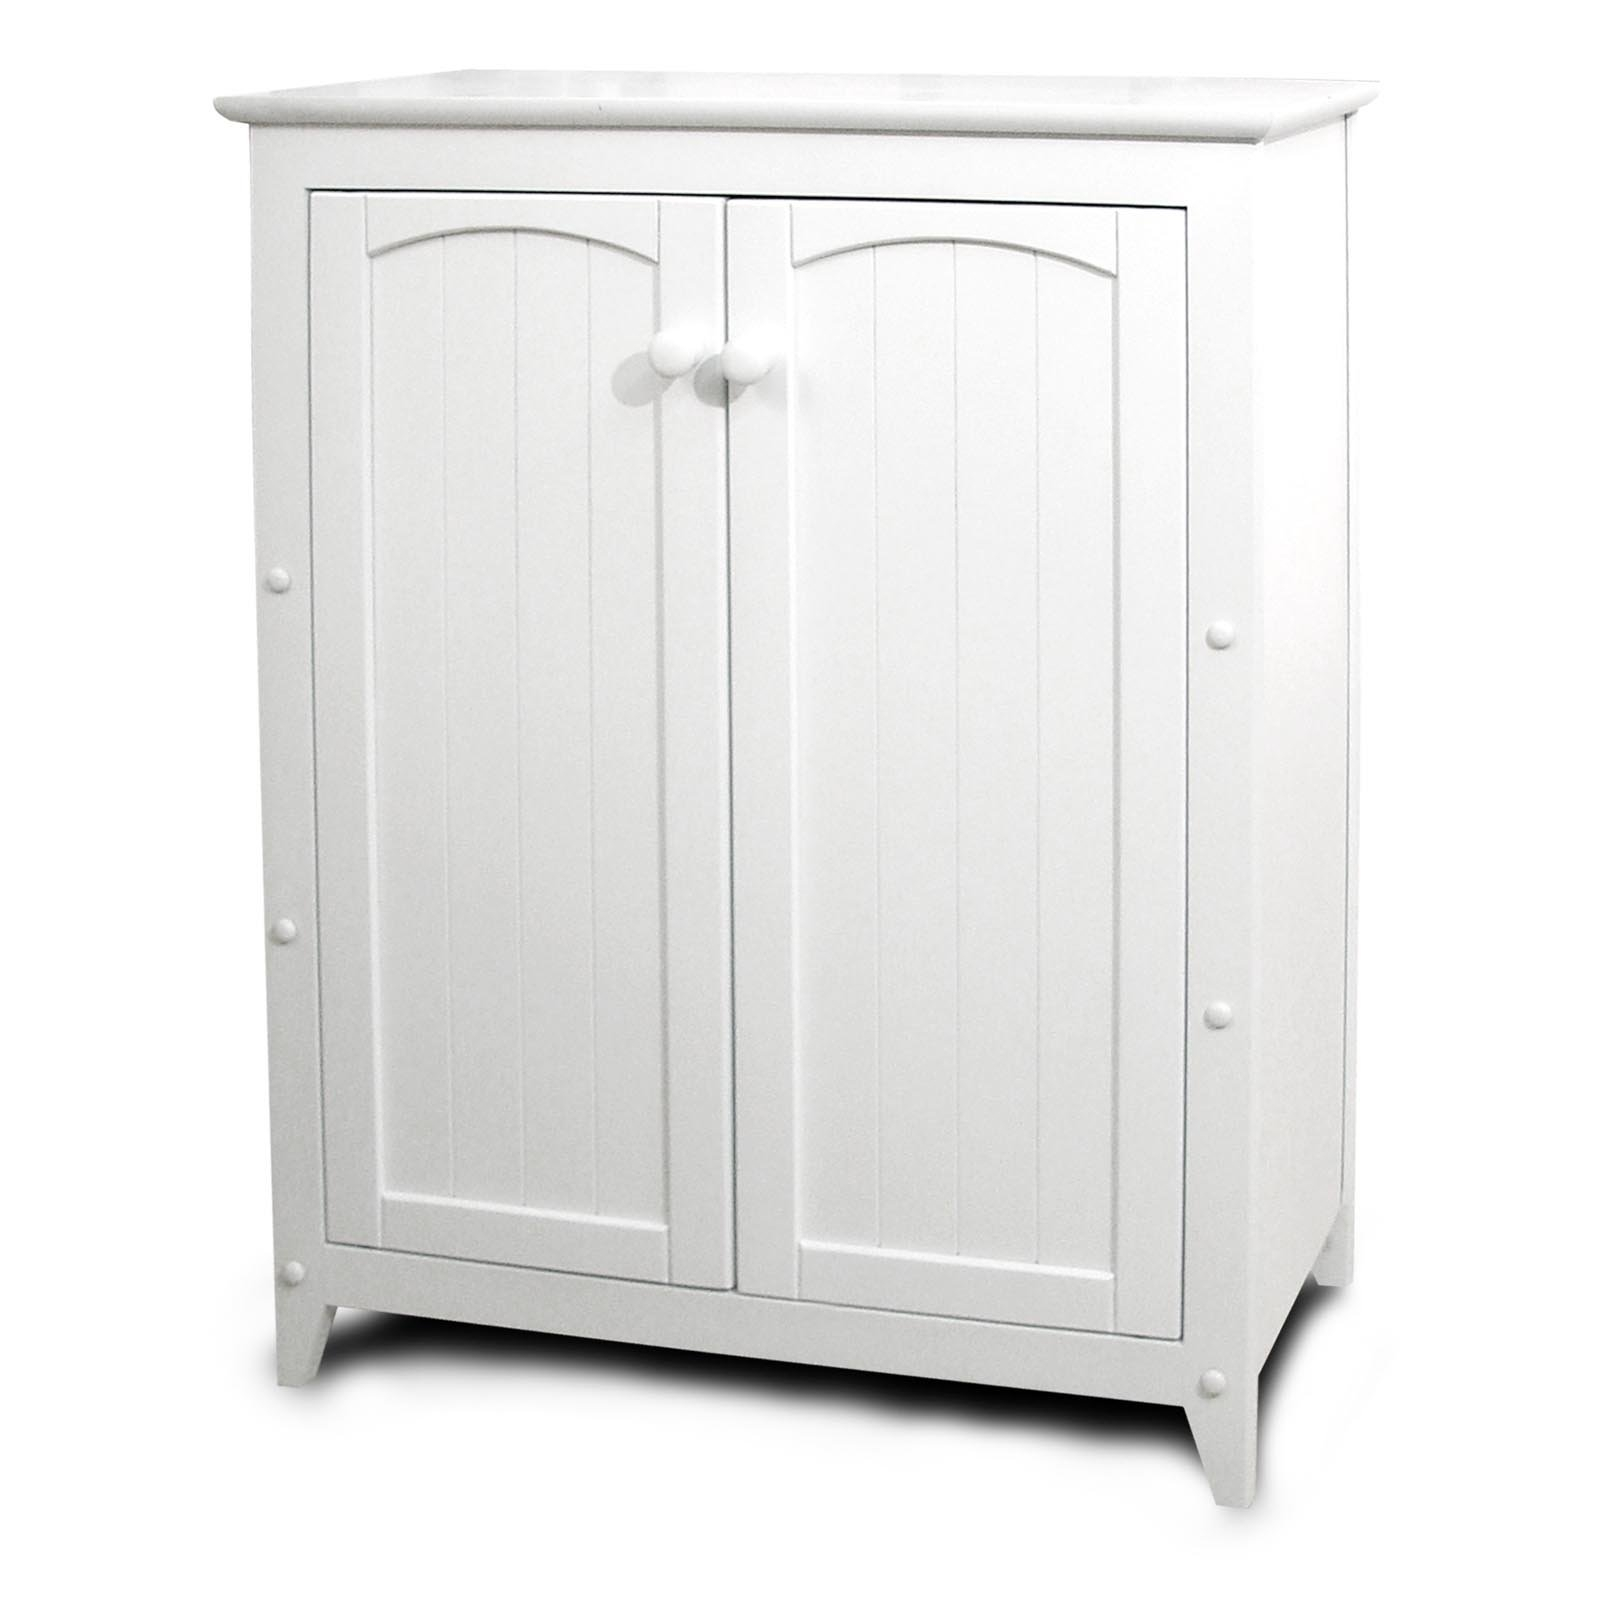 Furniture Storage Cabinets With Doors